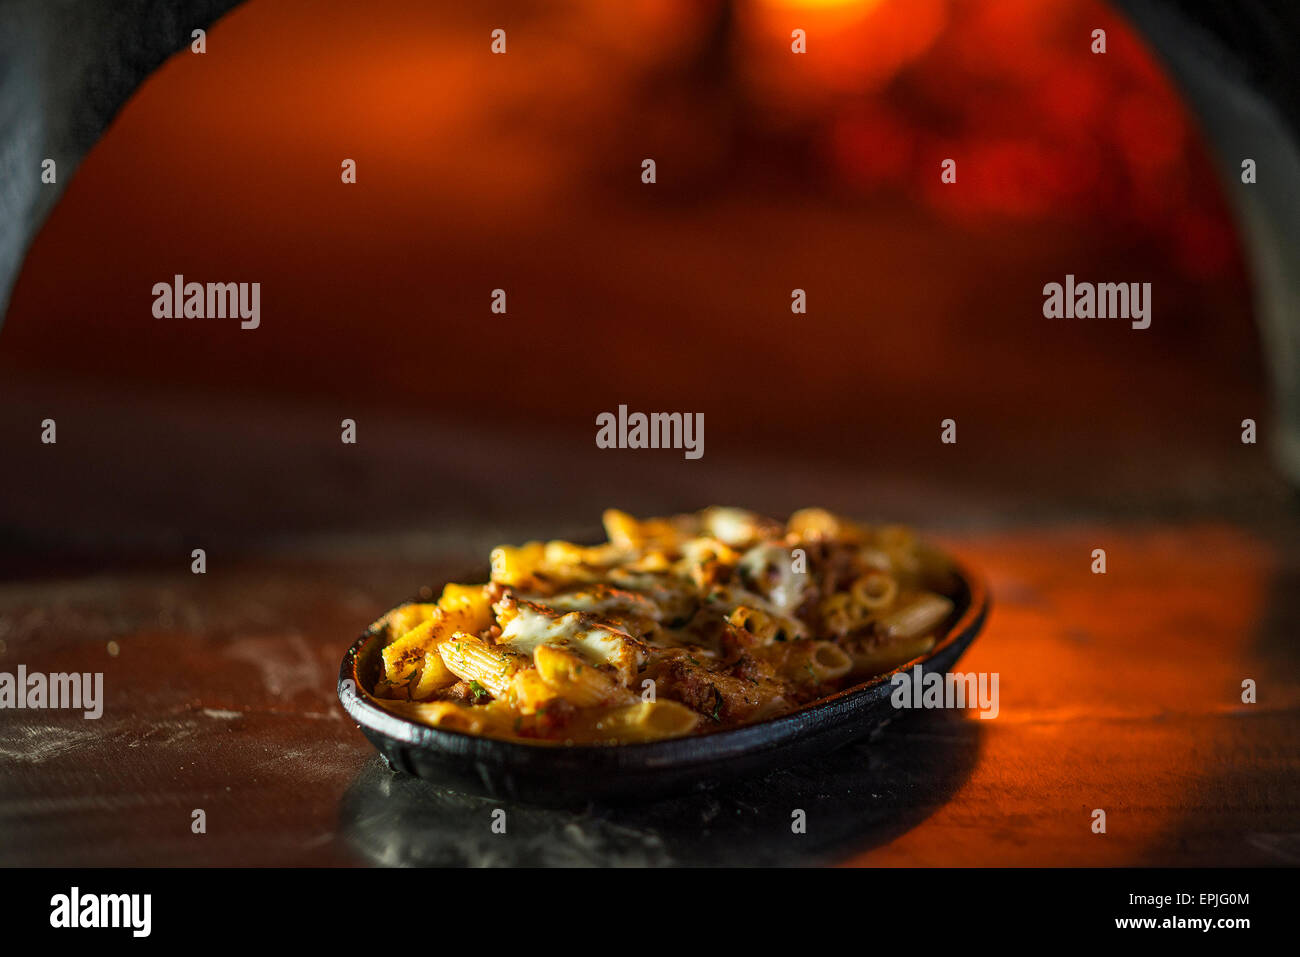 baked penne pasta bolognese with cheese in front of napoli style wood fired oven - Stock Image